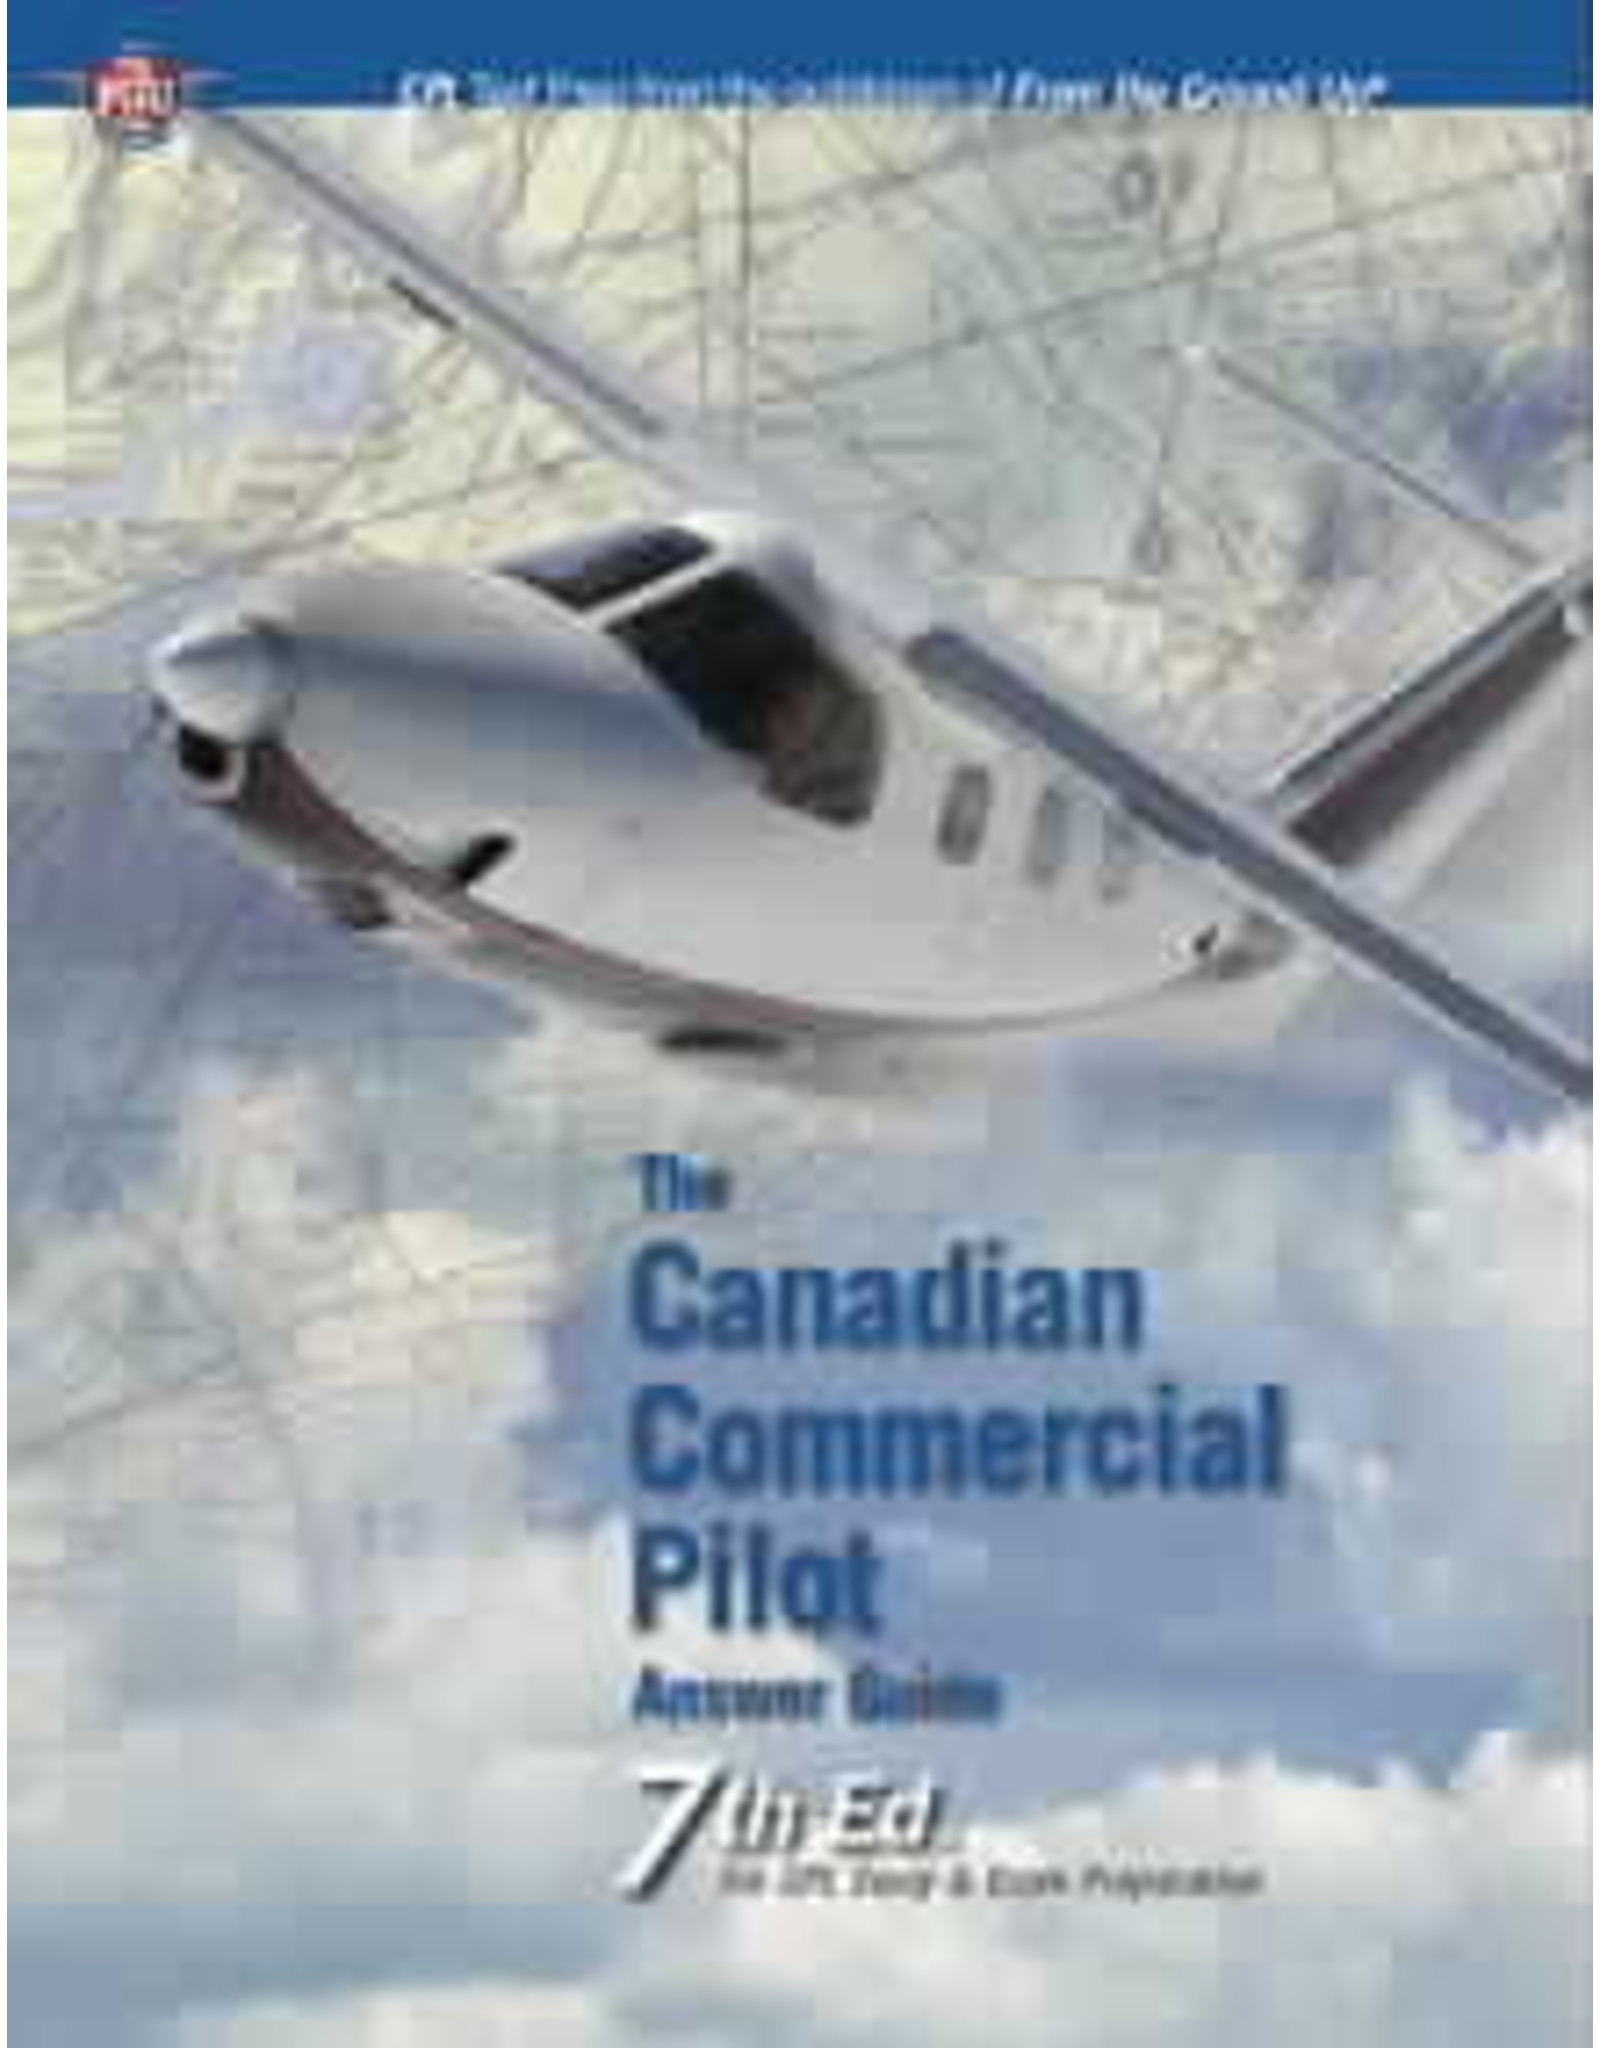 Aviation Publishers Canadian Commercial Pilot Answer Guide 7th Ed.